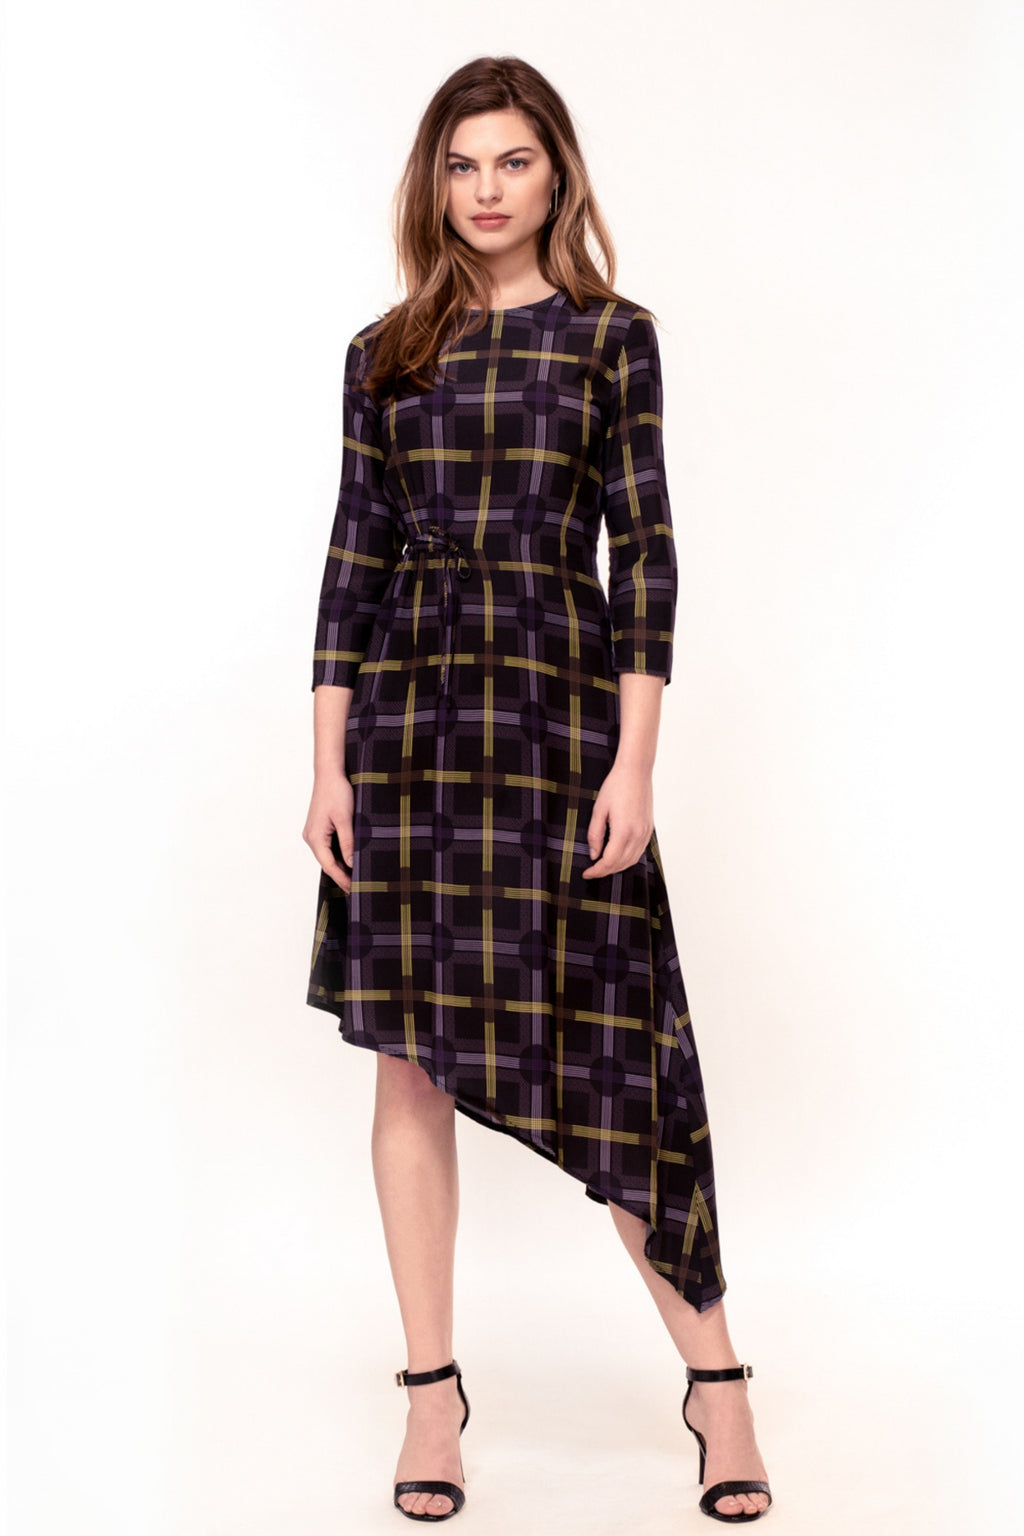 Azalea Hem Dress - Spot Plaid Print